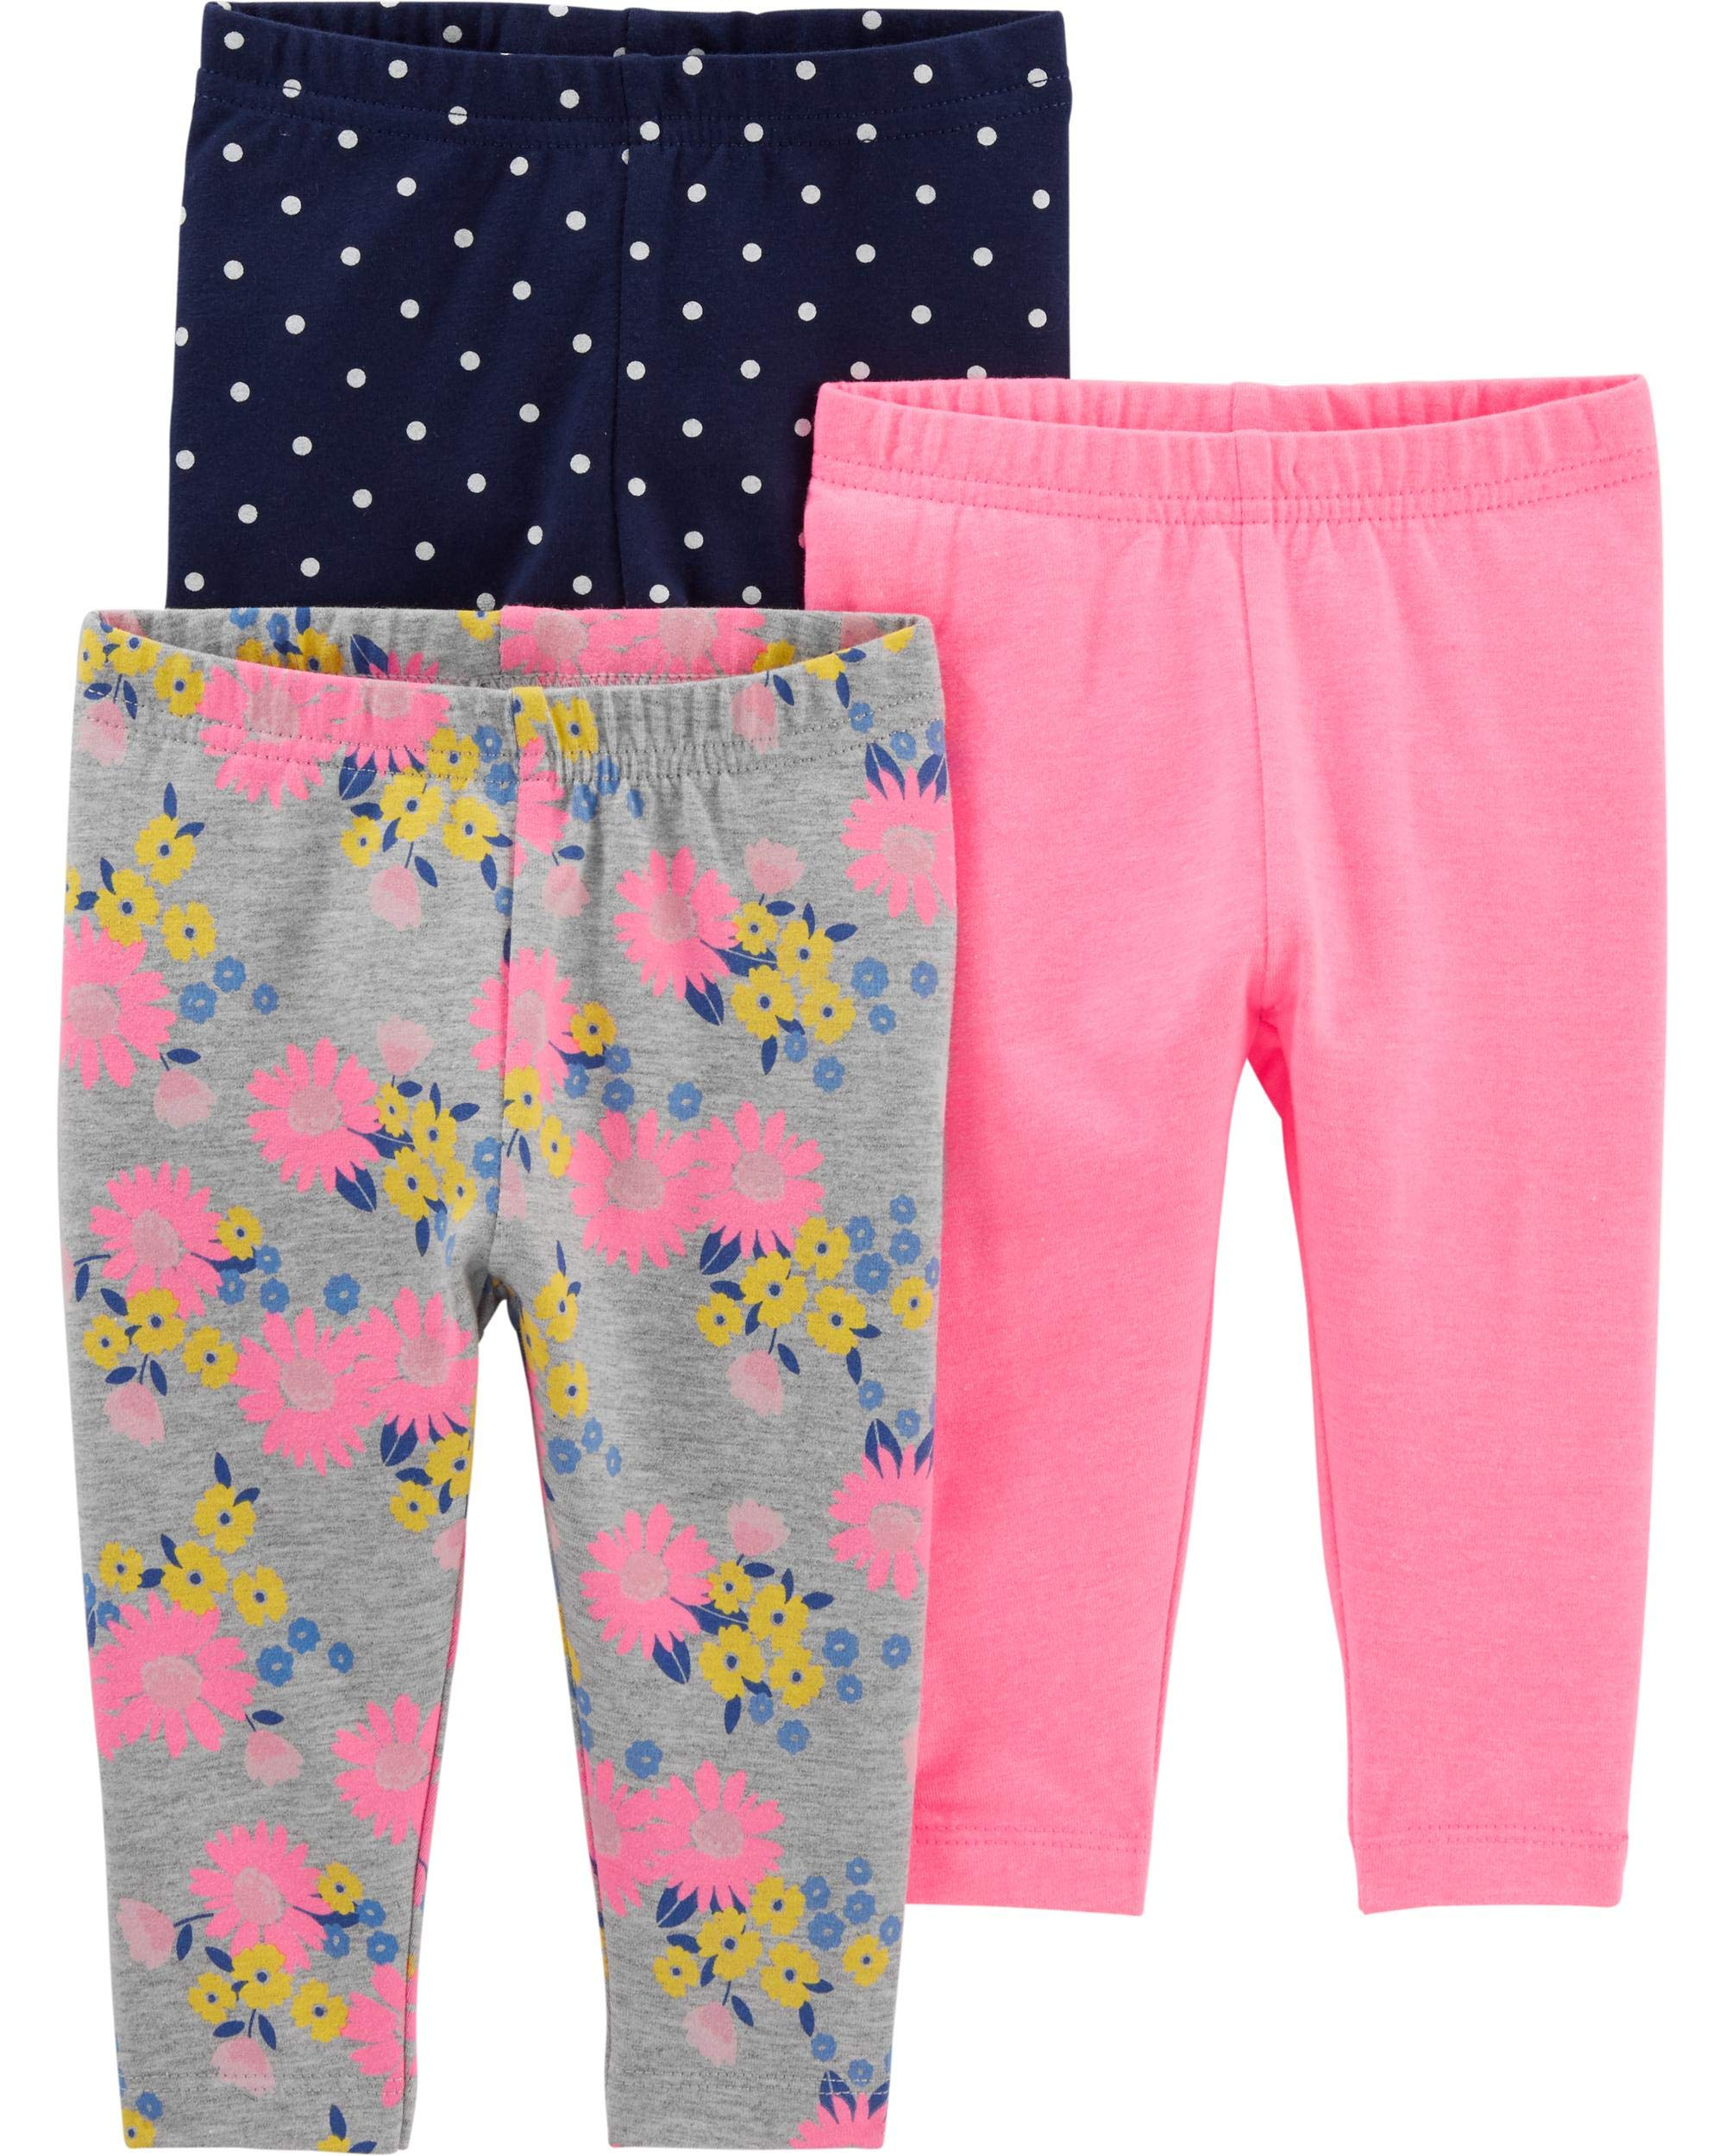 Simple Joys by Carter's Baby and Toddler Girls' 3-Pack Leggings